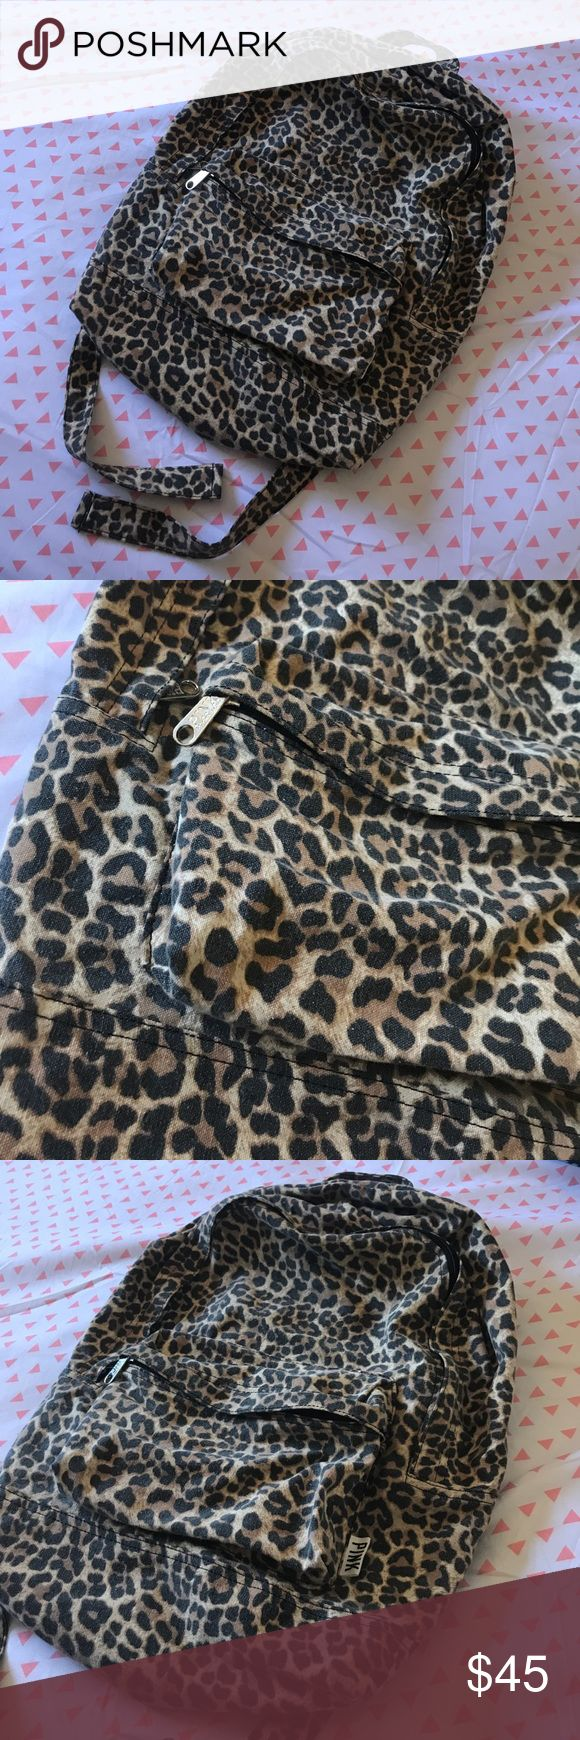 🐆 VS PINK Backpack🐆 Gently used, cheetah print, slightly faded, but no rips, tears, or stains!! Black, brown & tan in color. Zipper tabs are still solid chrome, no peeling or fading on them. 1 big zipper, & 1 small front zipper porch. Adjustable straps. Trendy, cute, & perfect for back to school🍎 PINK Victoria's Secret Bags Backpacks